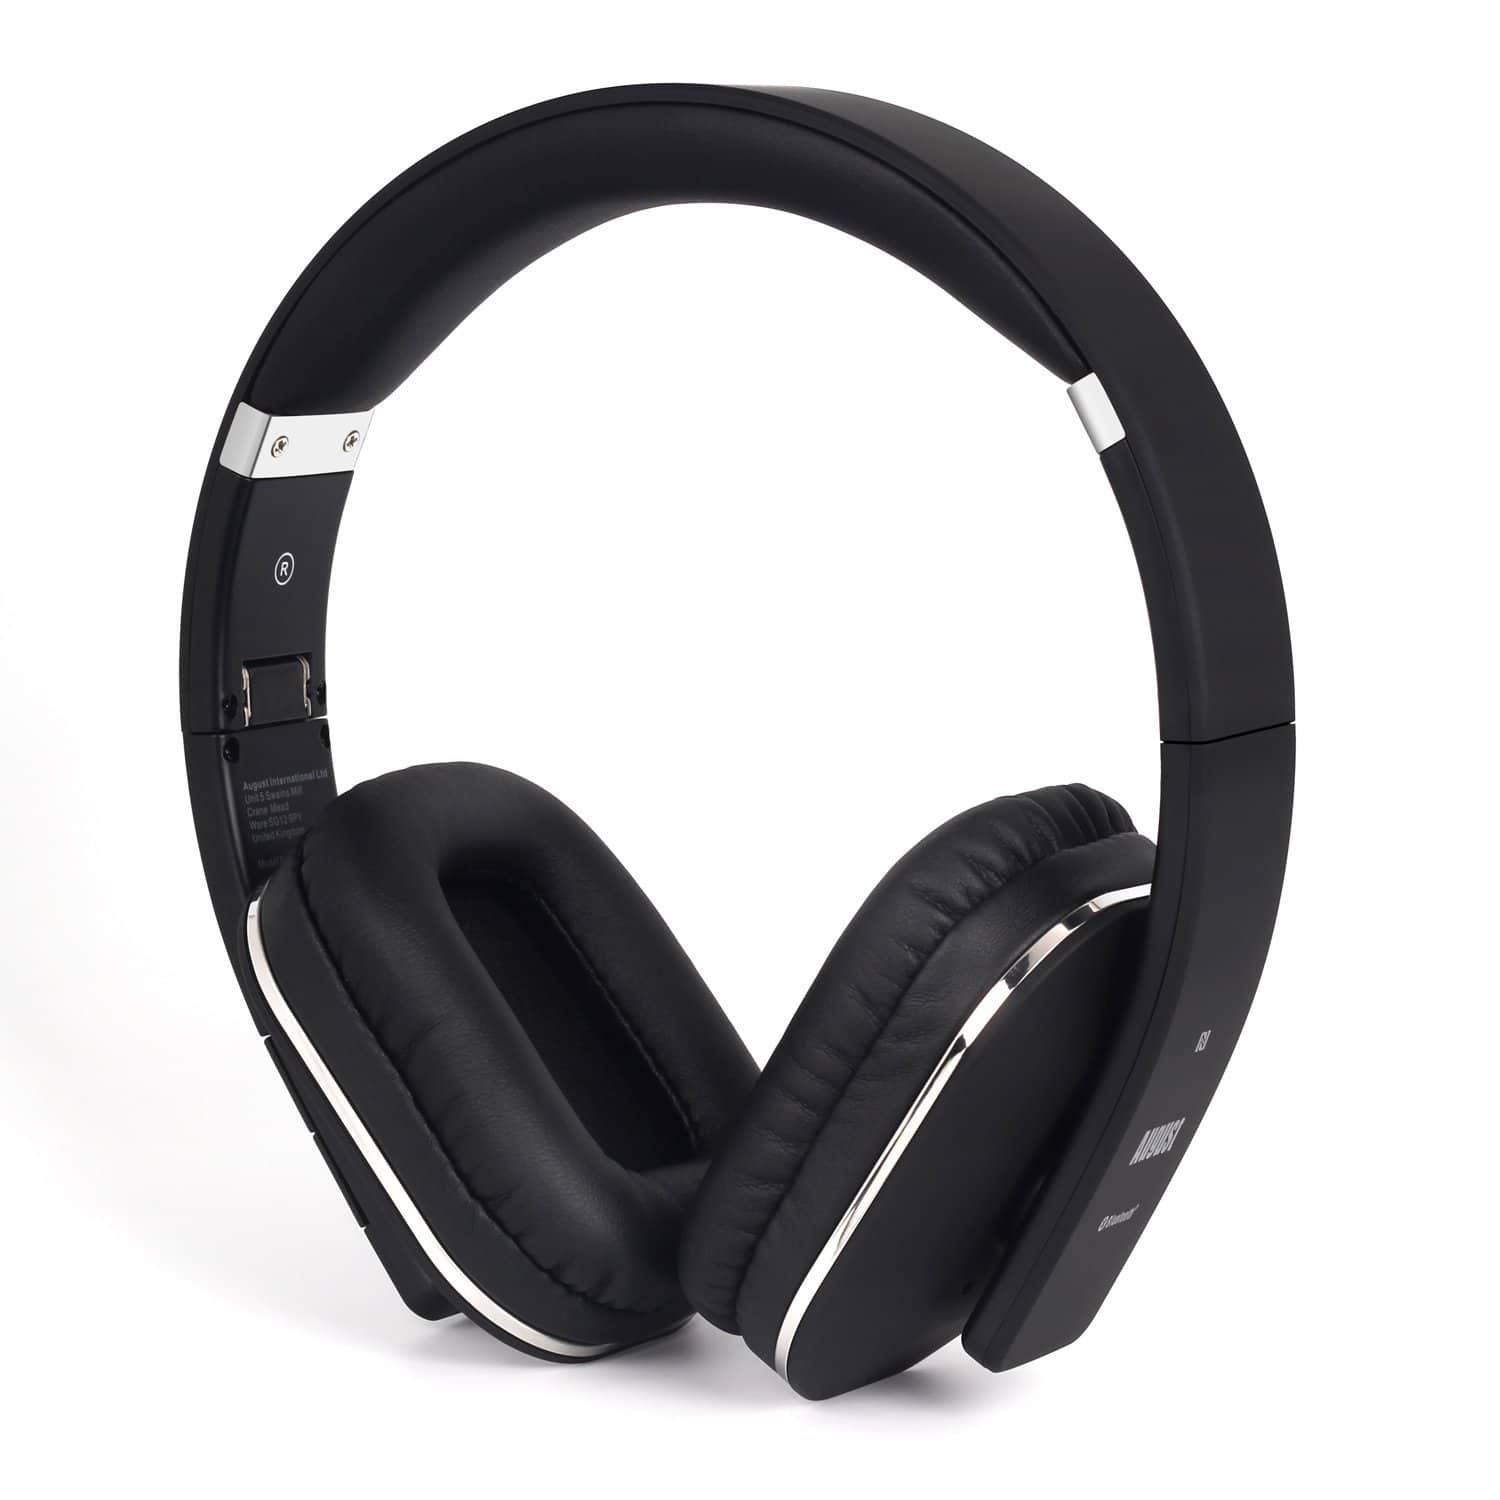 August EP650 Bluetooth Wireless Over Ear Headphones with Multipoint / NFC / 3.5mm Audio In / Headset Microphone - Black [Black] $26.97